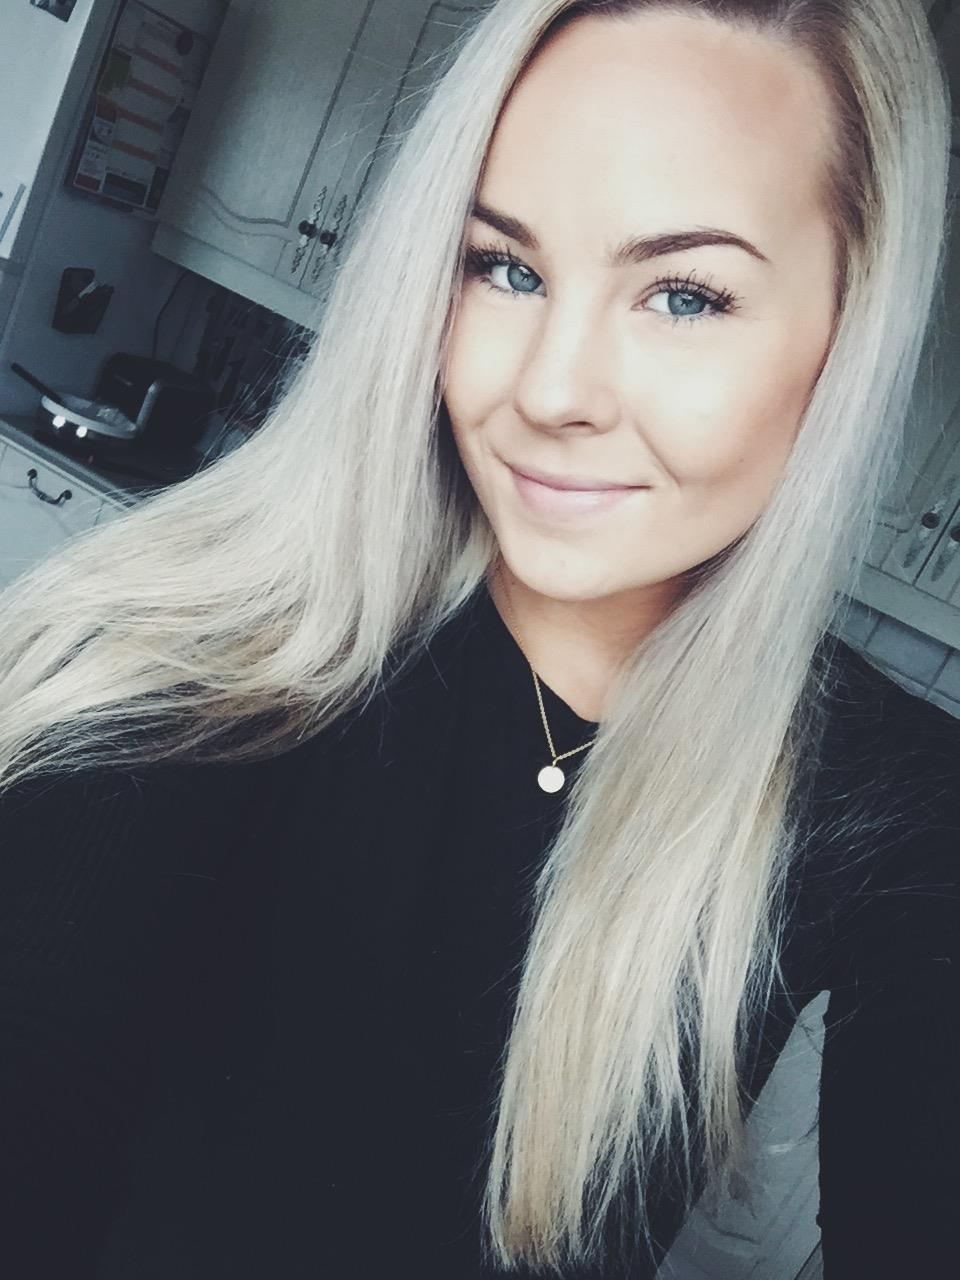 Jane Hellesvik